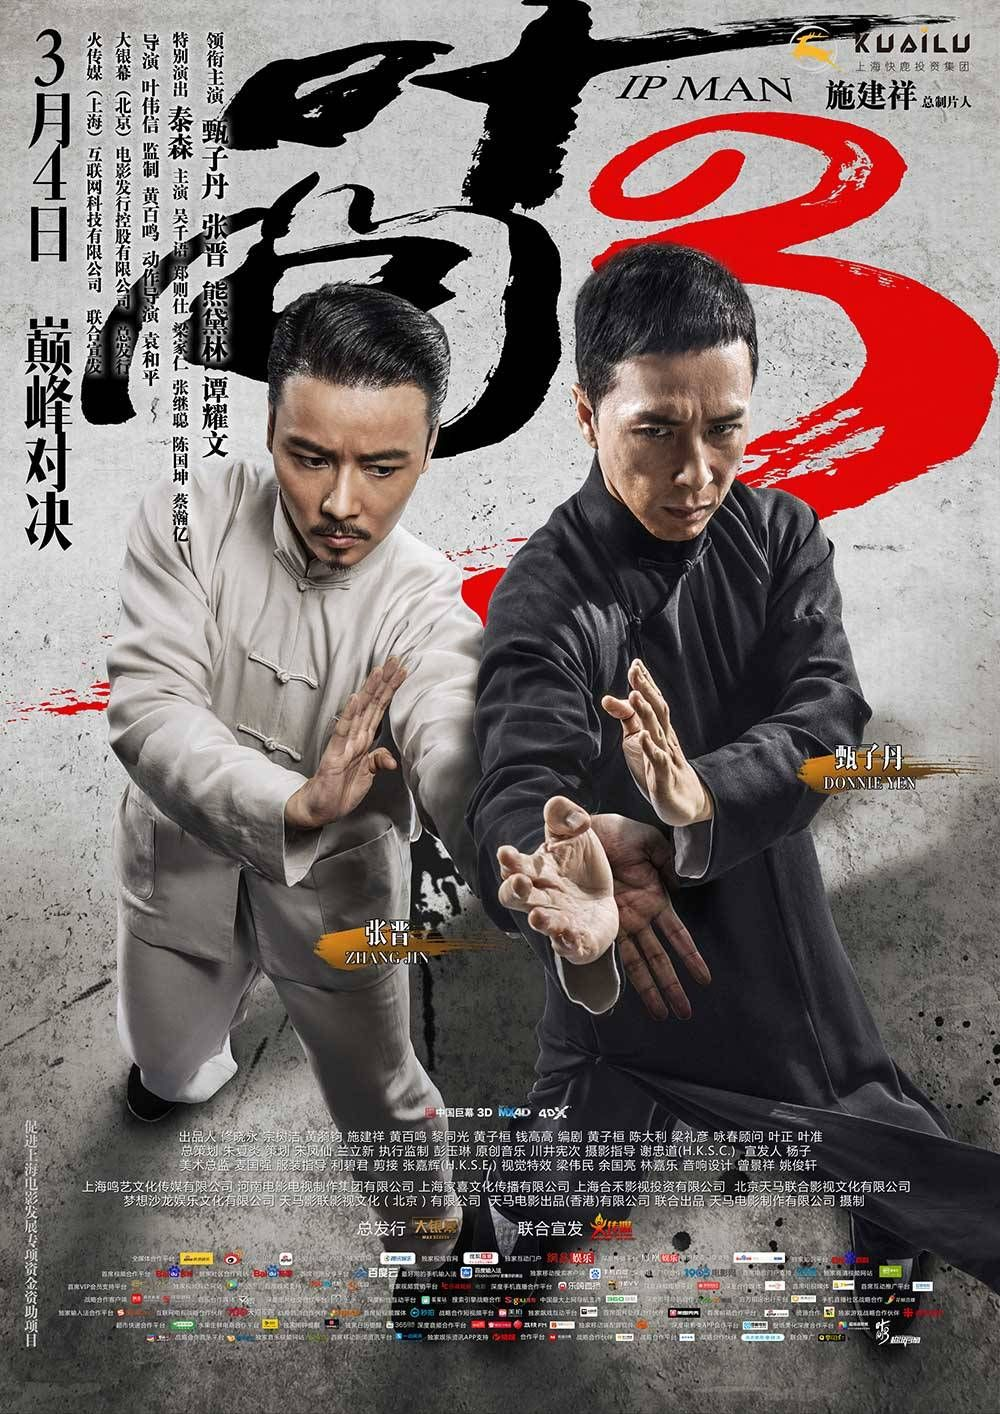 The Blind Ninja Ip Man 3 Ip Man Movie Kung Fu Movies Martial Arts Movies